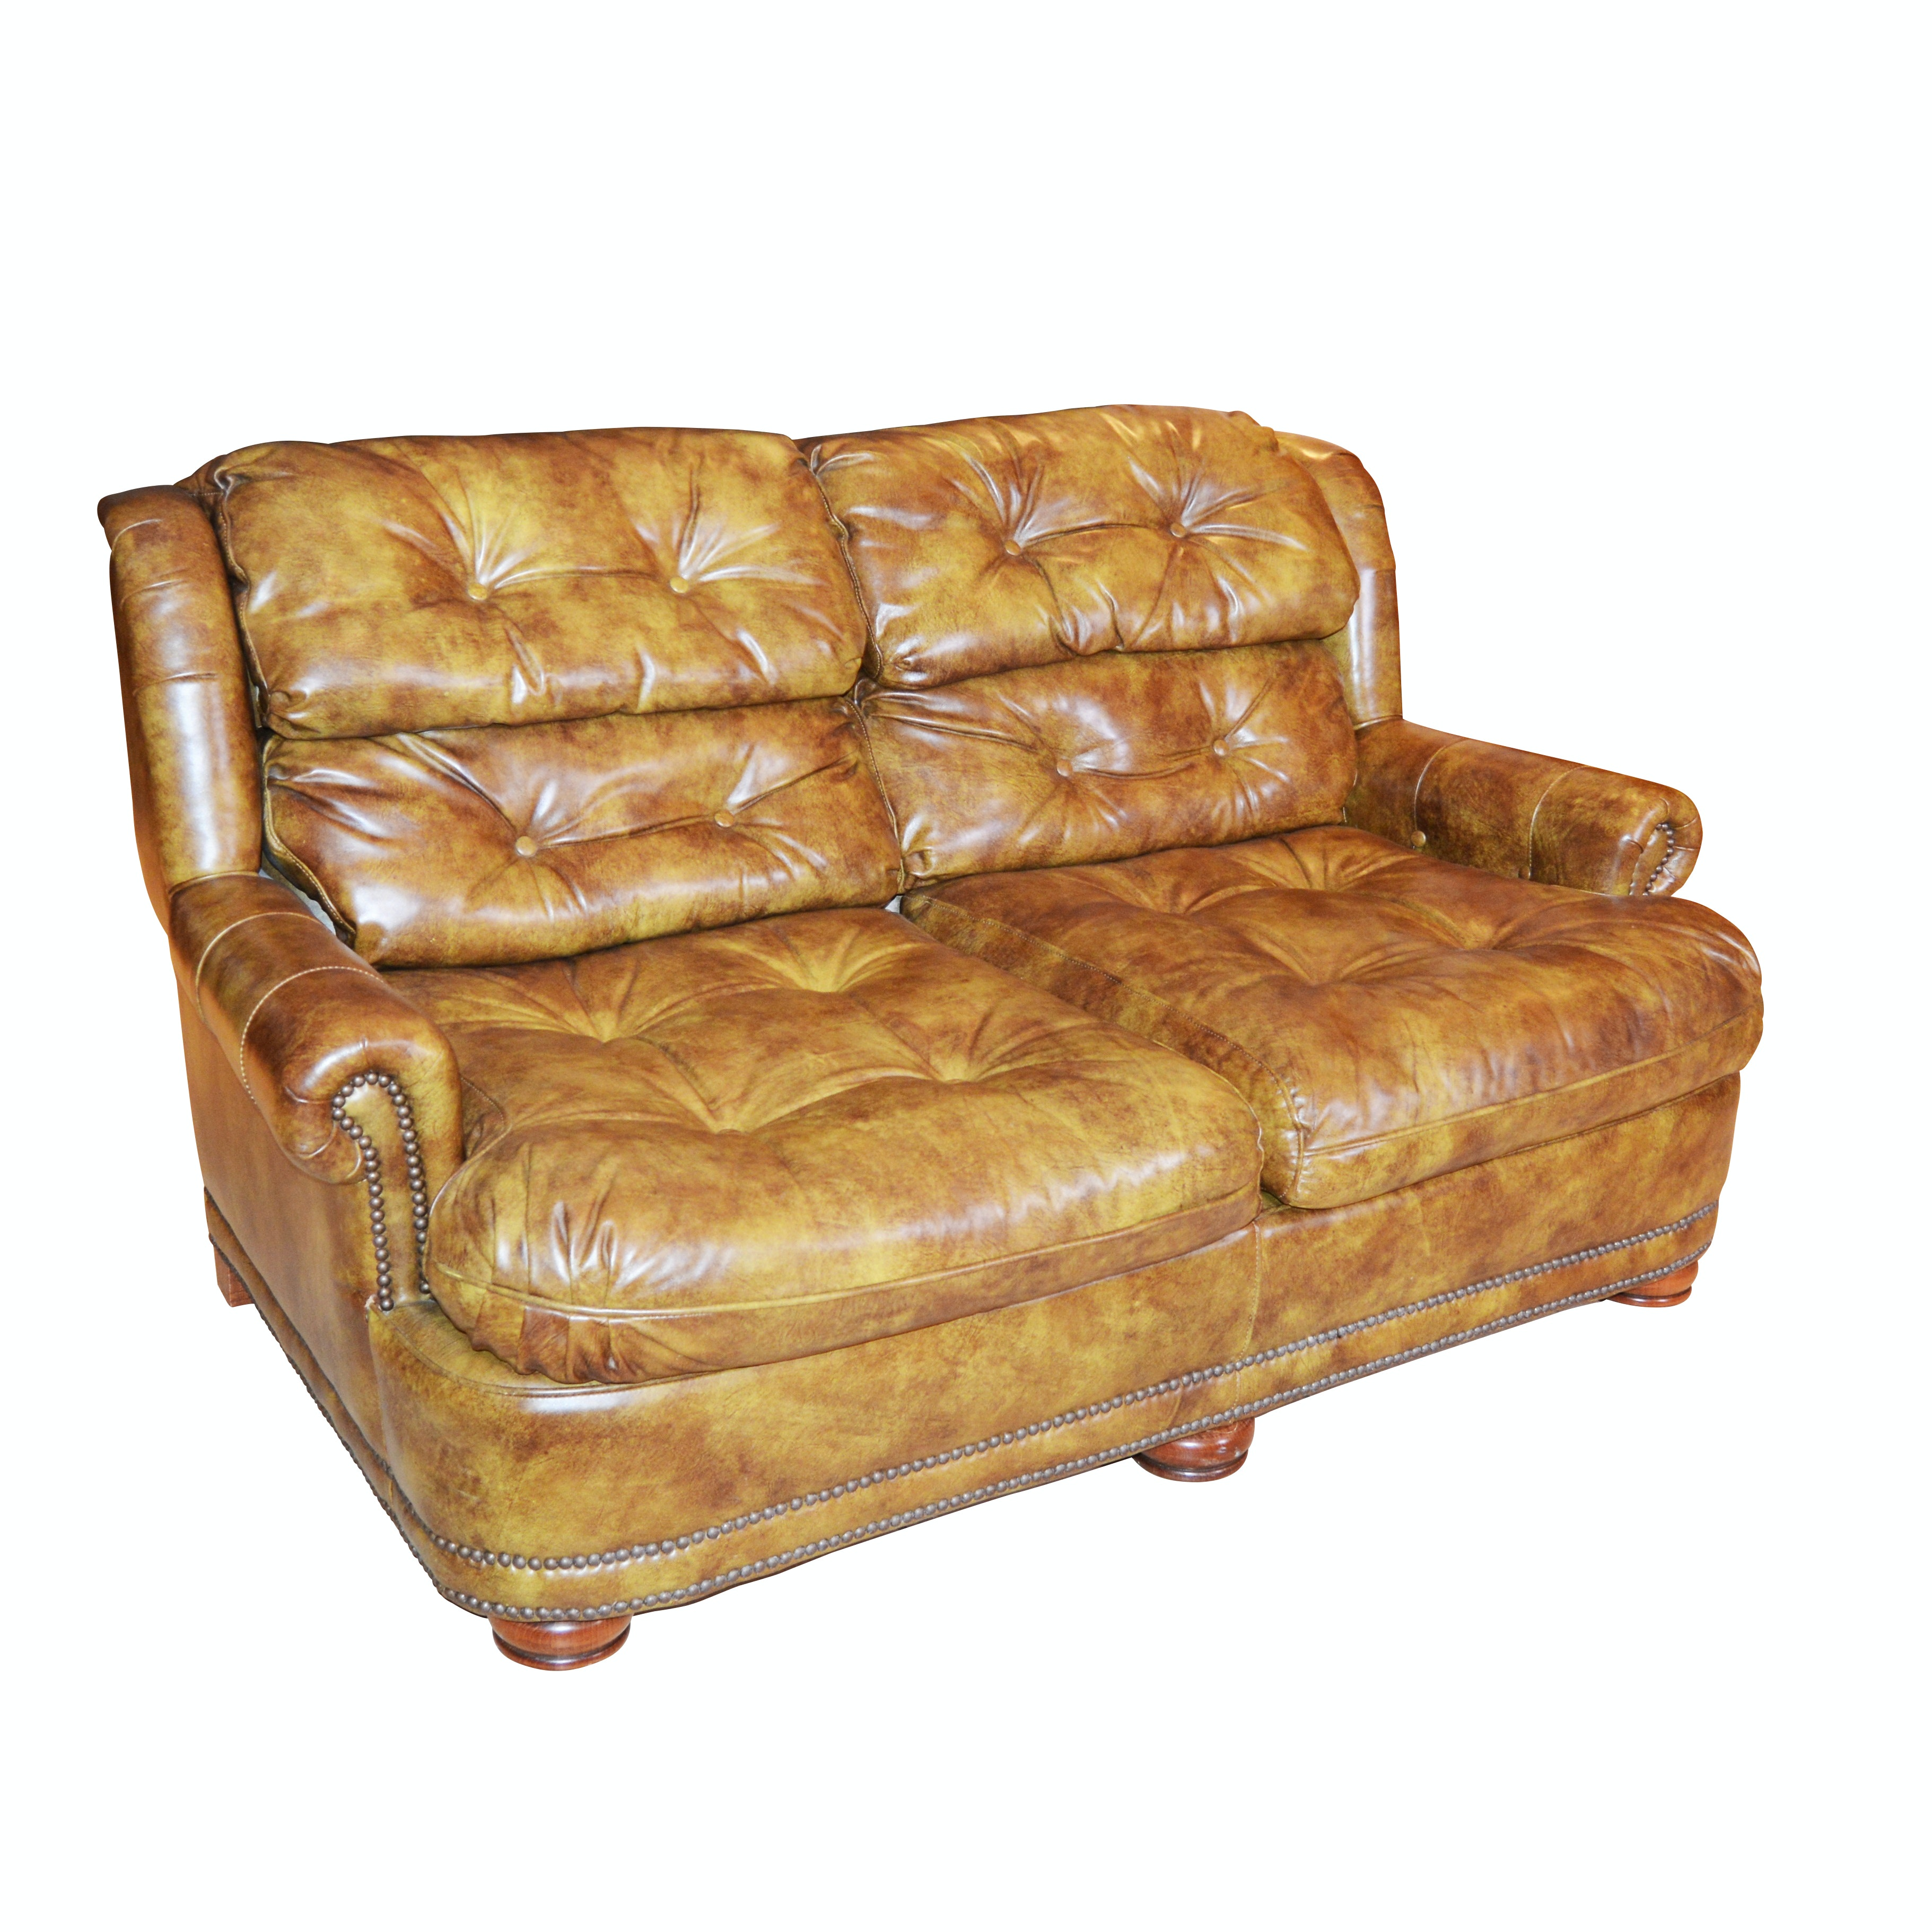 Tufted Mottled Leather Loveseat, Contemporary